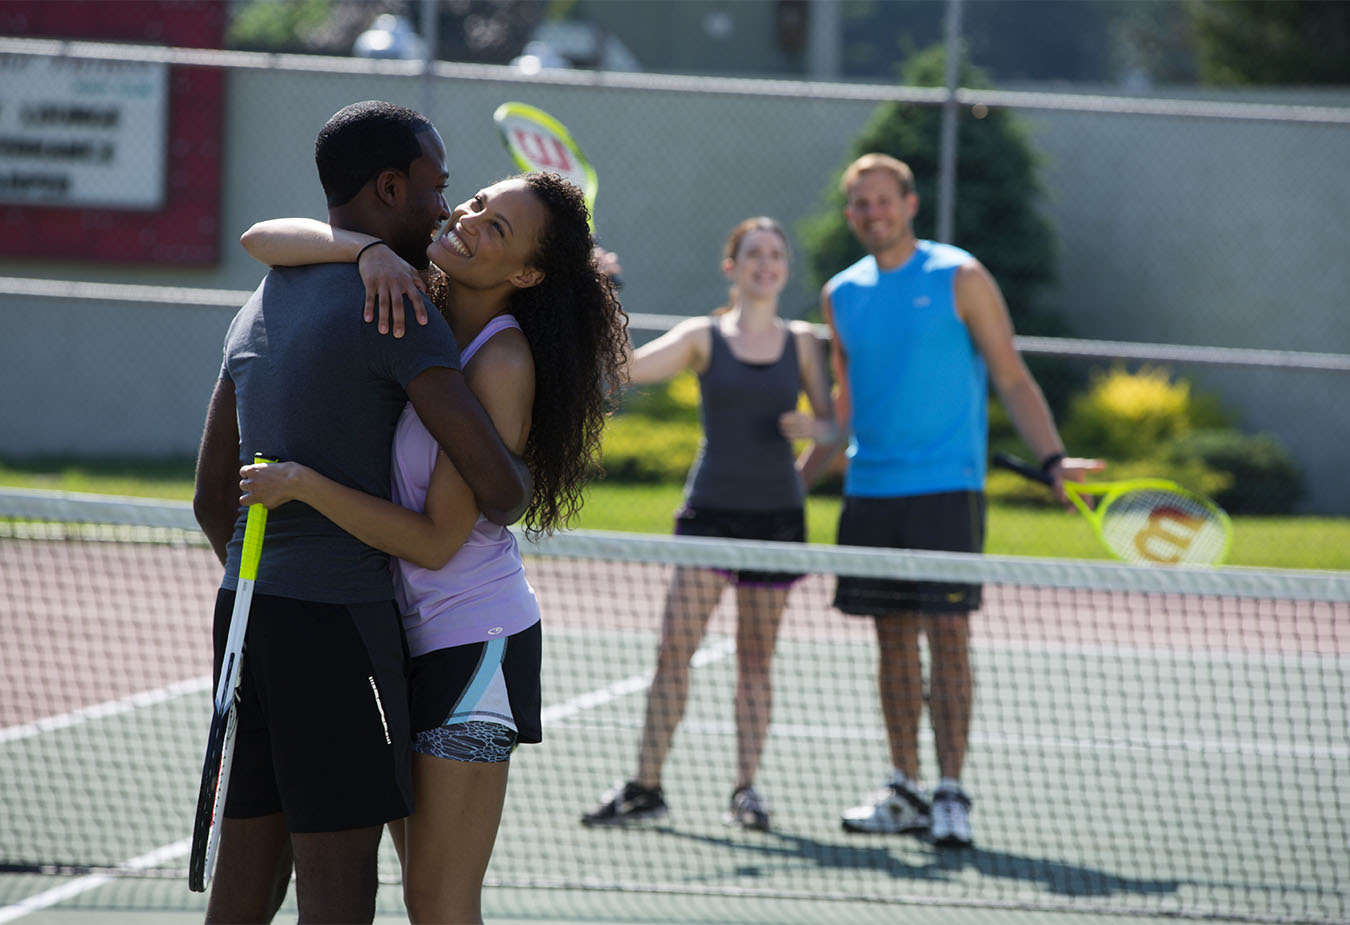 Tennis at Cove Haven